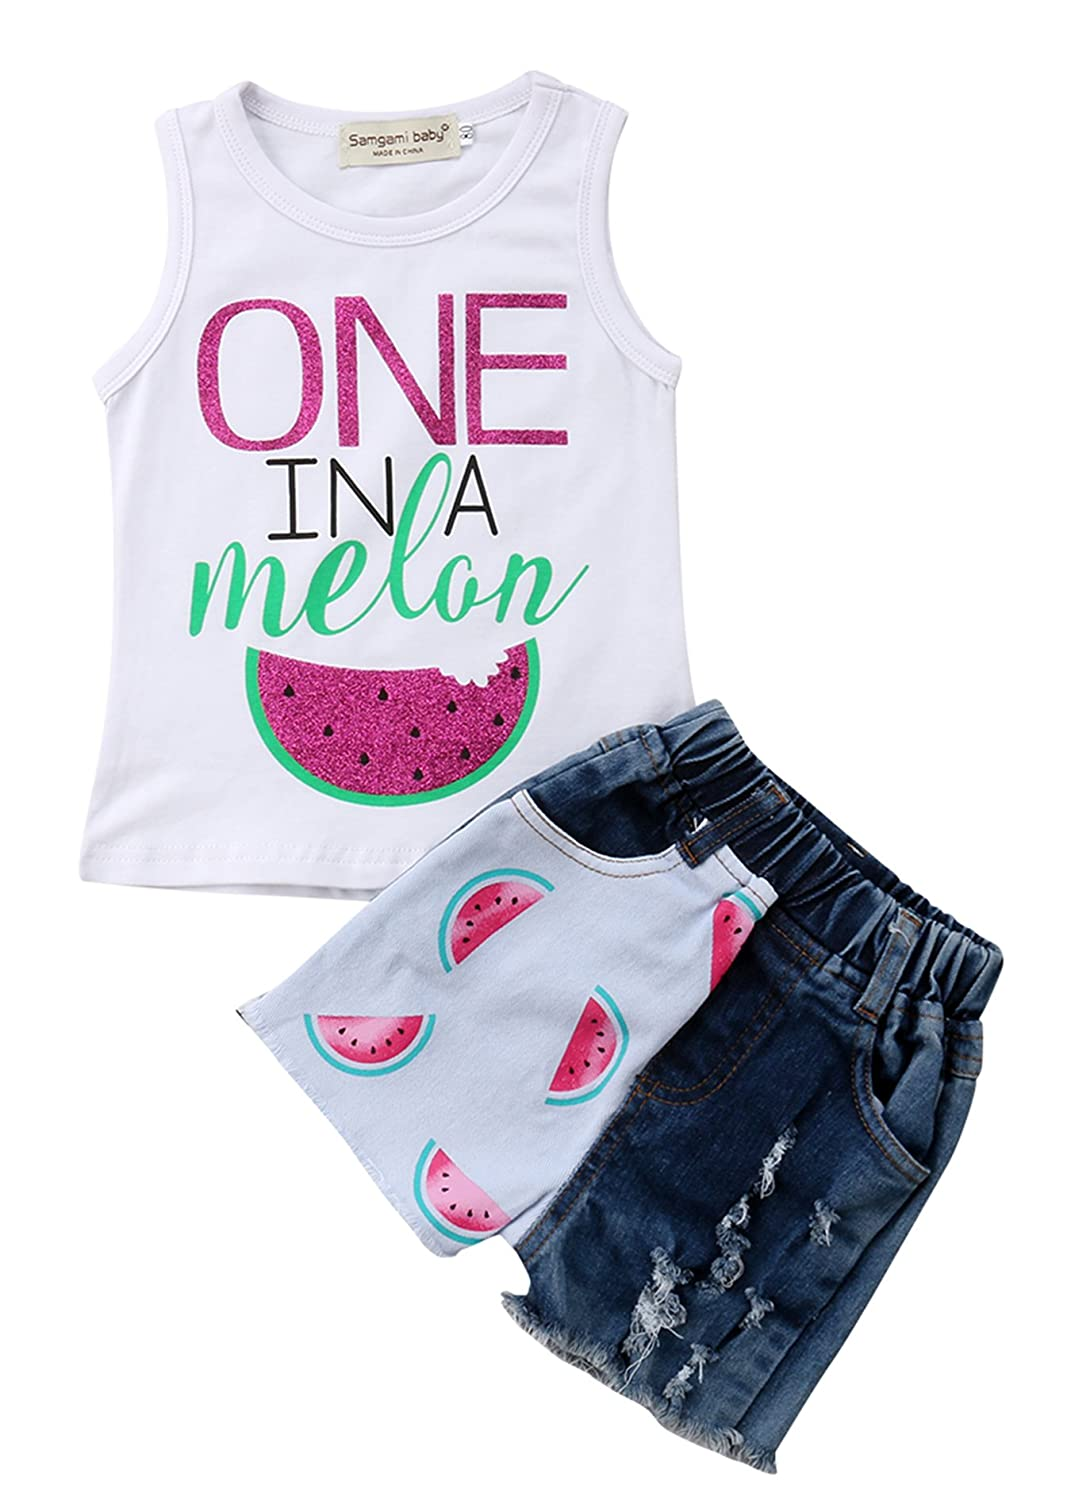 Melon Denim Jeans Shorts 1-6T Toddler Baby Little Girls Summer Outfits Sets Watermelon Sleeveless Vest Tops